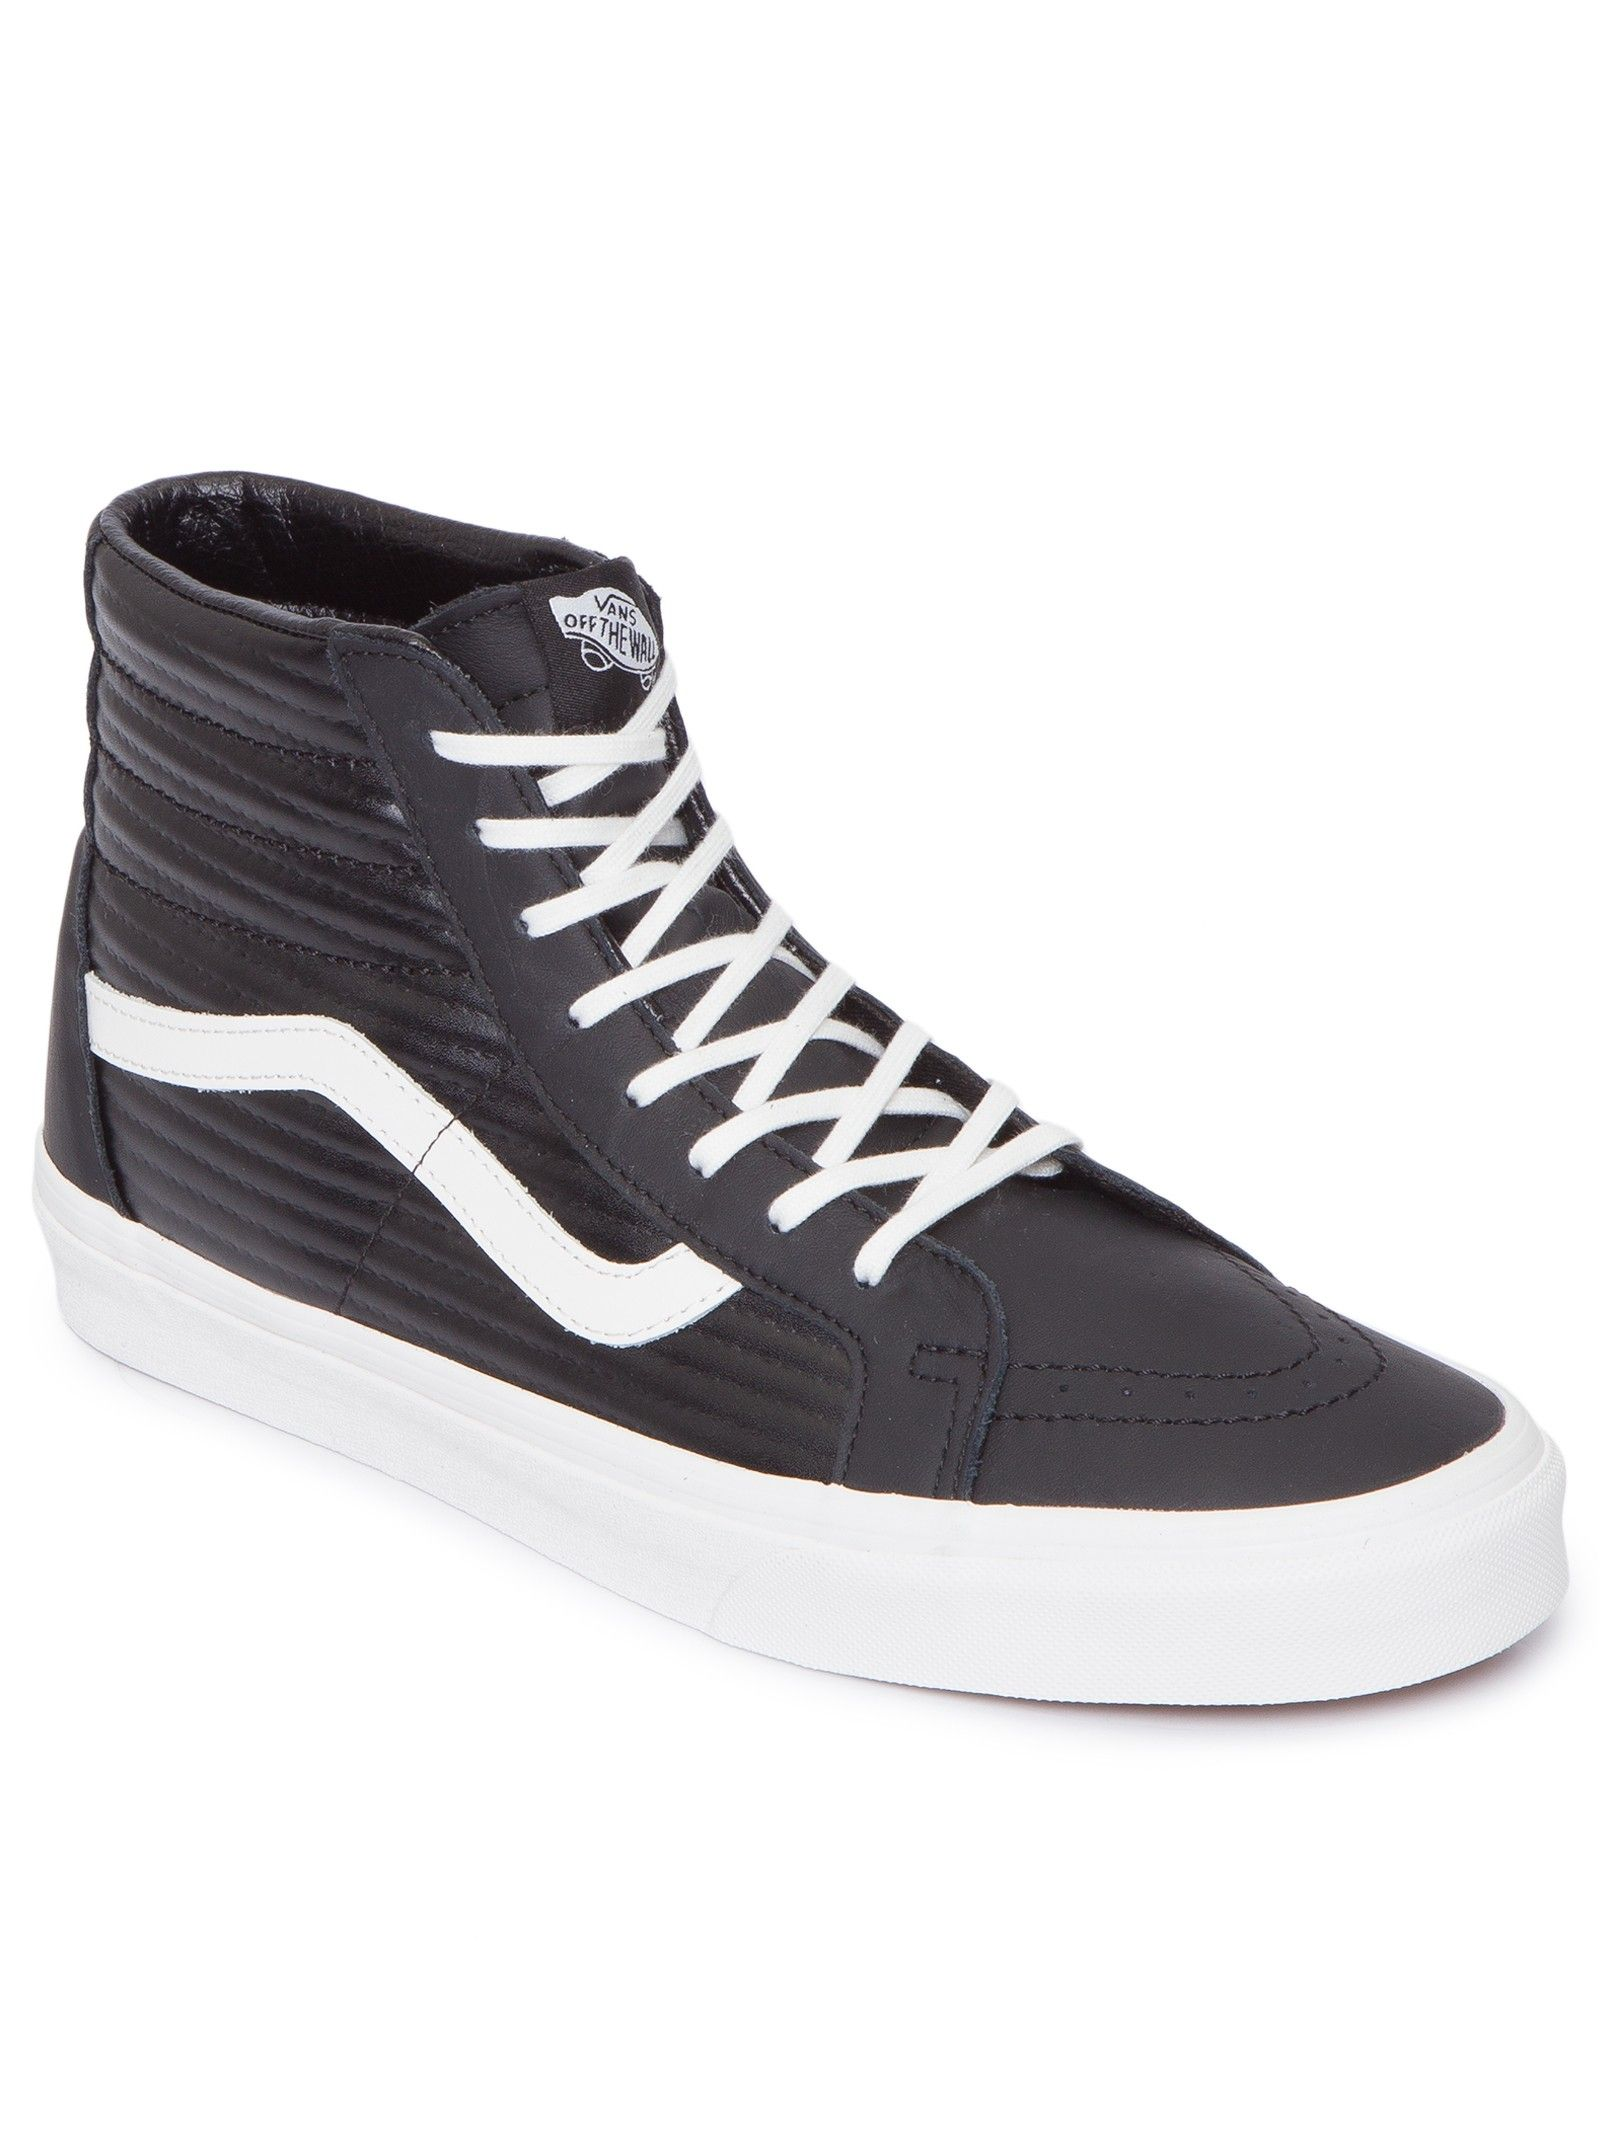 264130ca033c Tênis Ua Sk8-Hi Reissue Moto Leather - Vans - Preto - Shop2gether ...